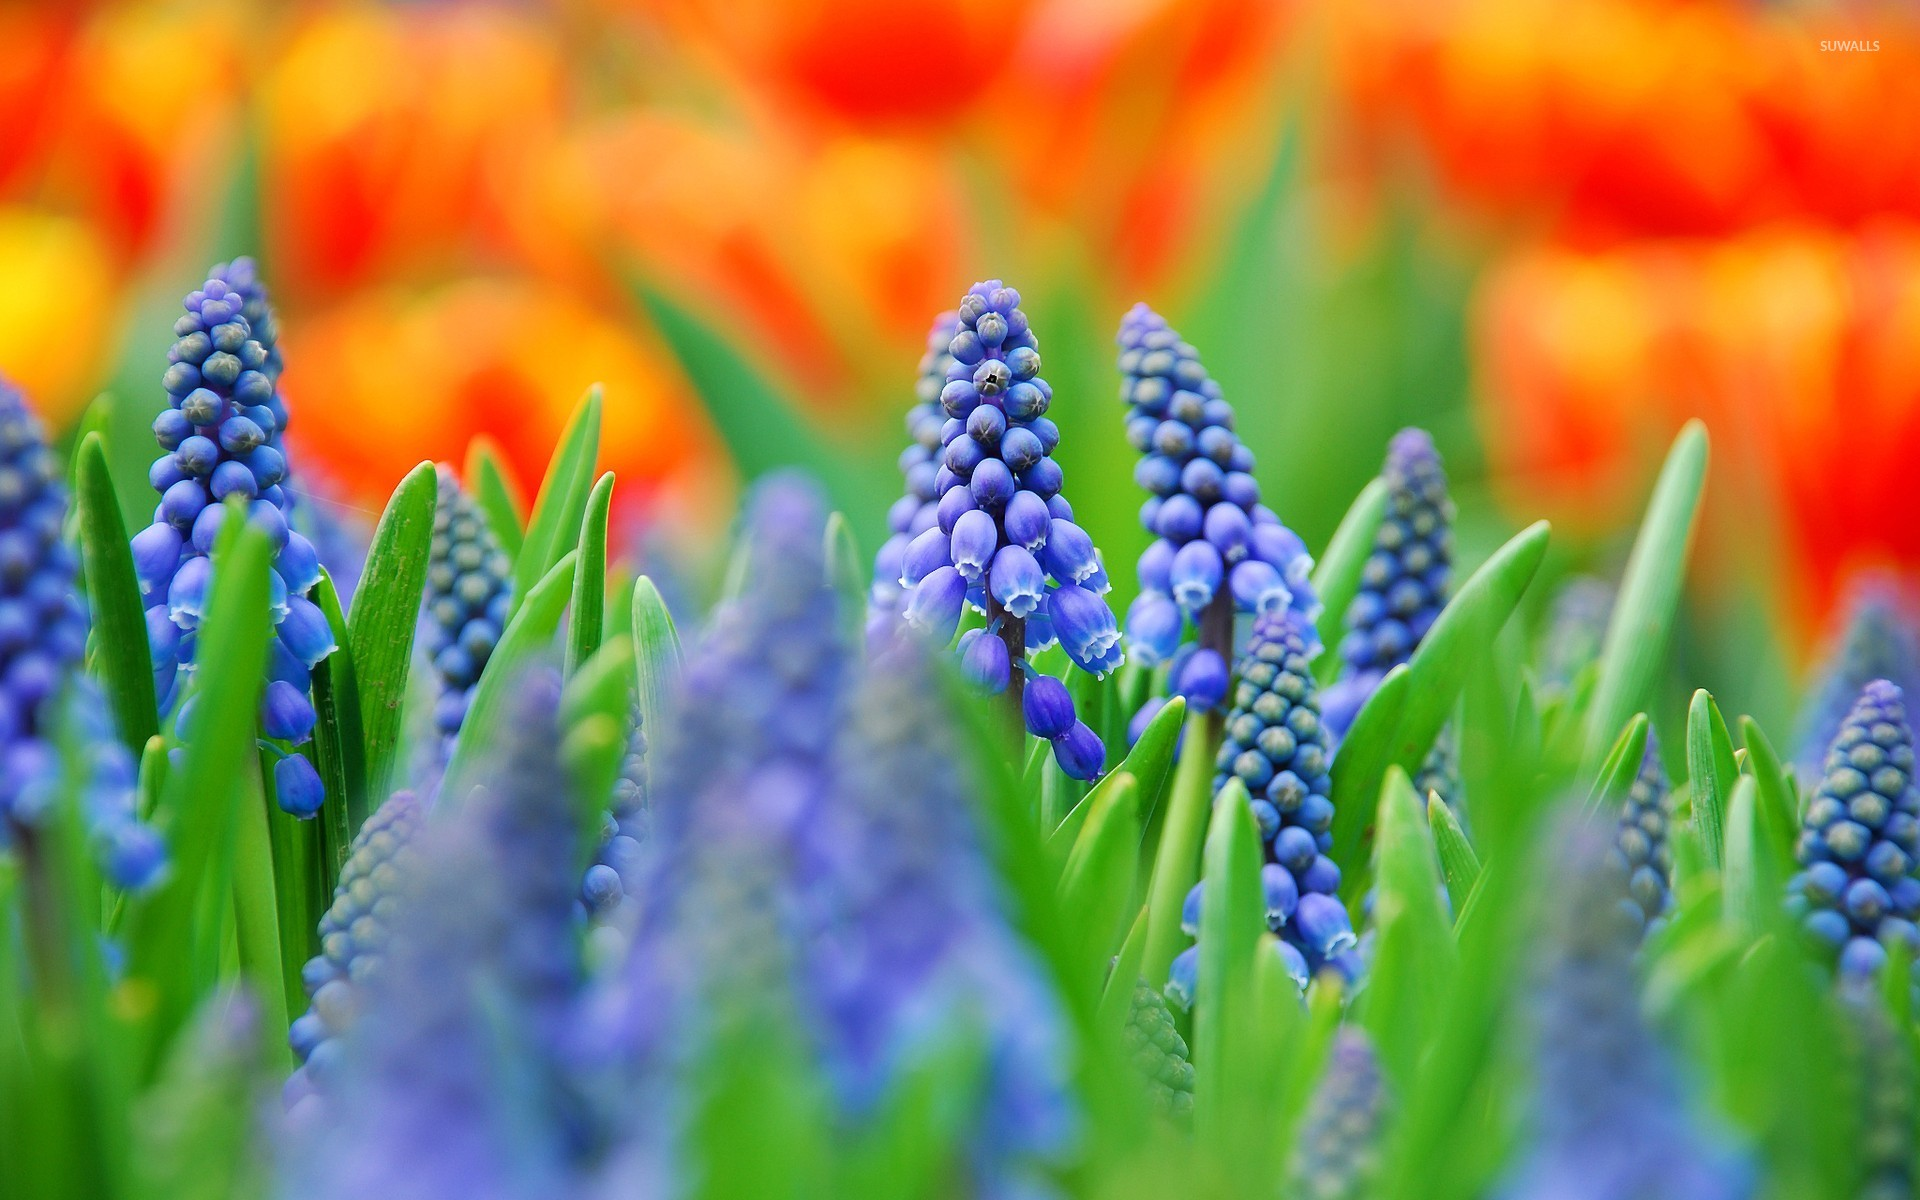 Cosmos Quotes Wallpaper Grape Hyacinth Wallpaper Flower Wallpapers 22979